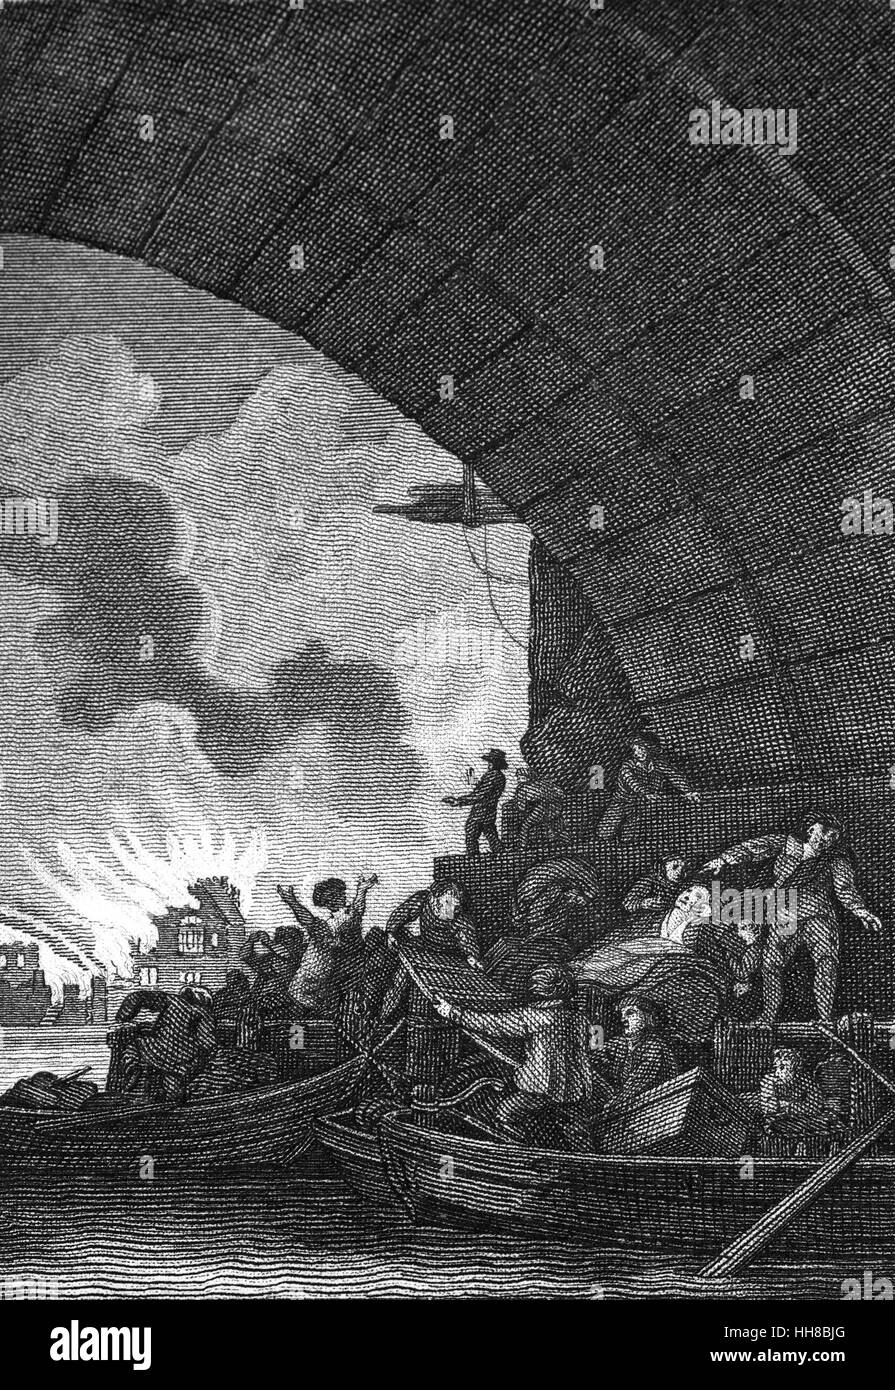 A view from the River Thames of the Great Fire of London, a major conflagration that swept through the central parts - Stock Image